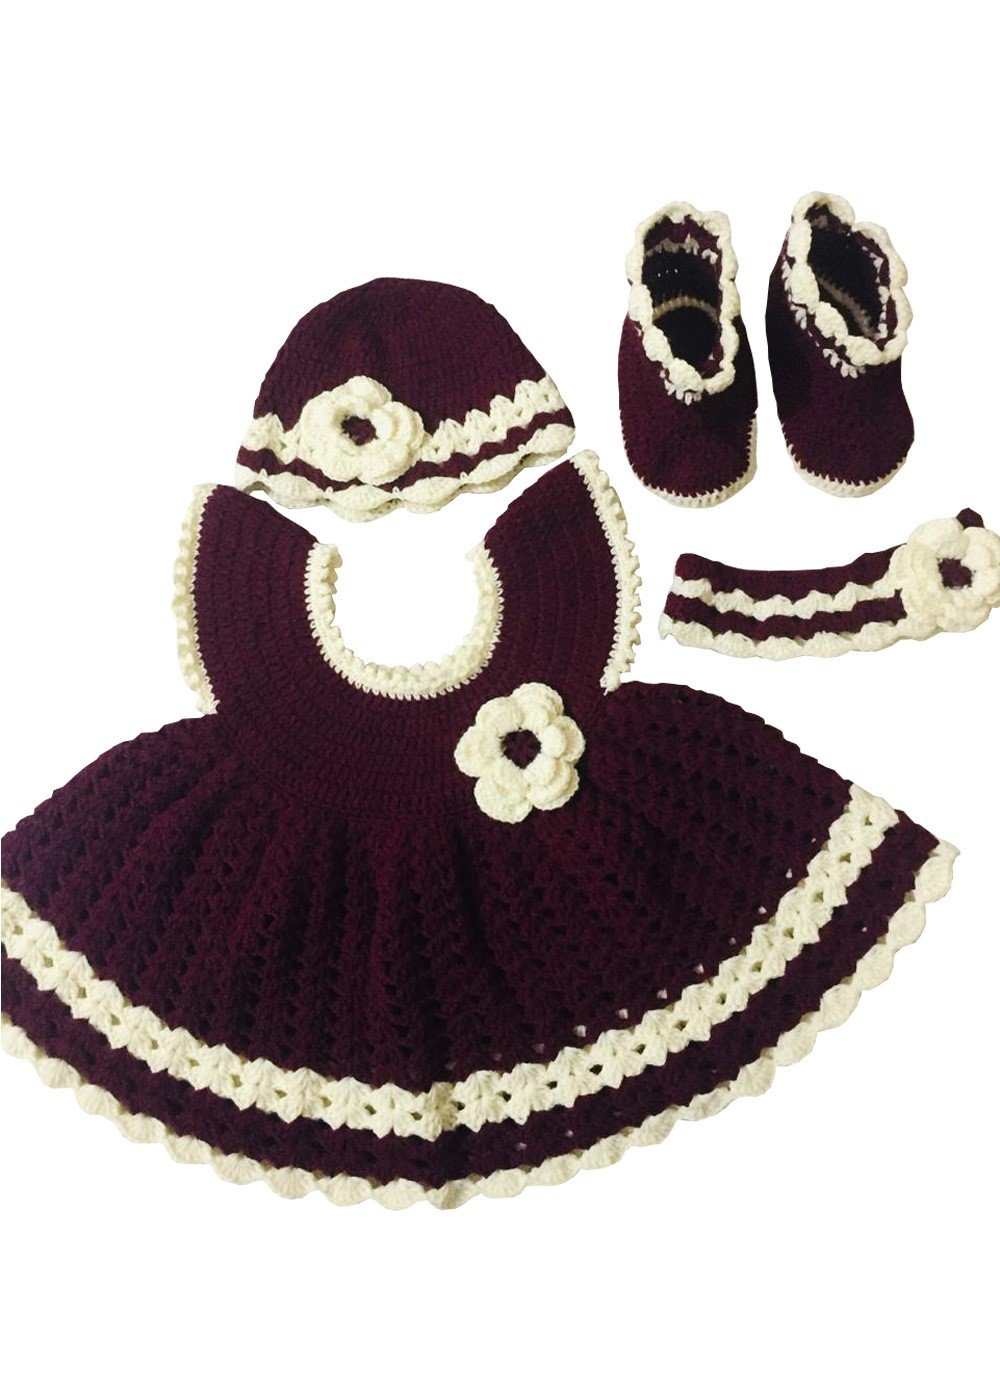 Hand Crocheted Baby dress 4 Piece Set